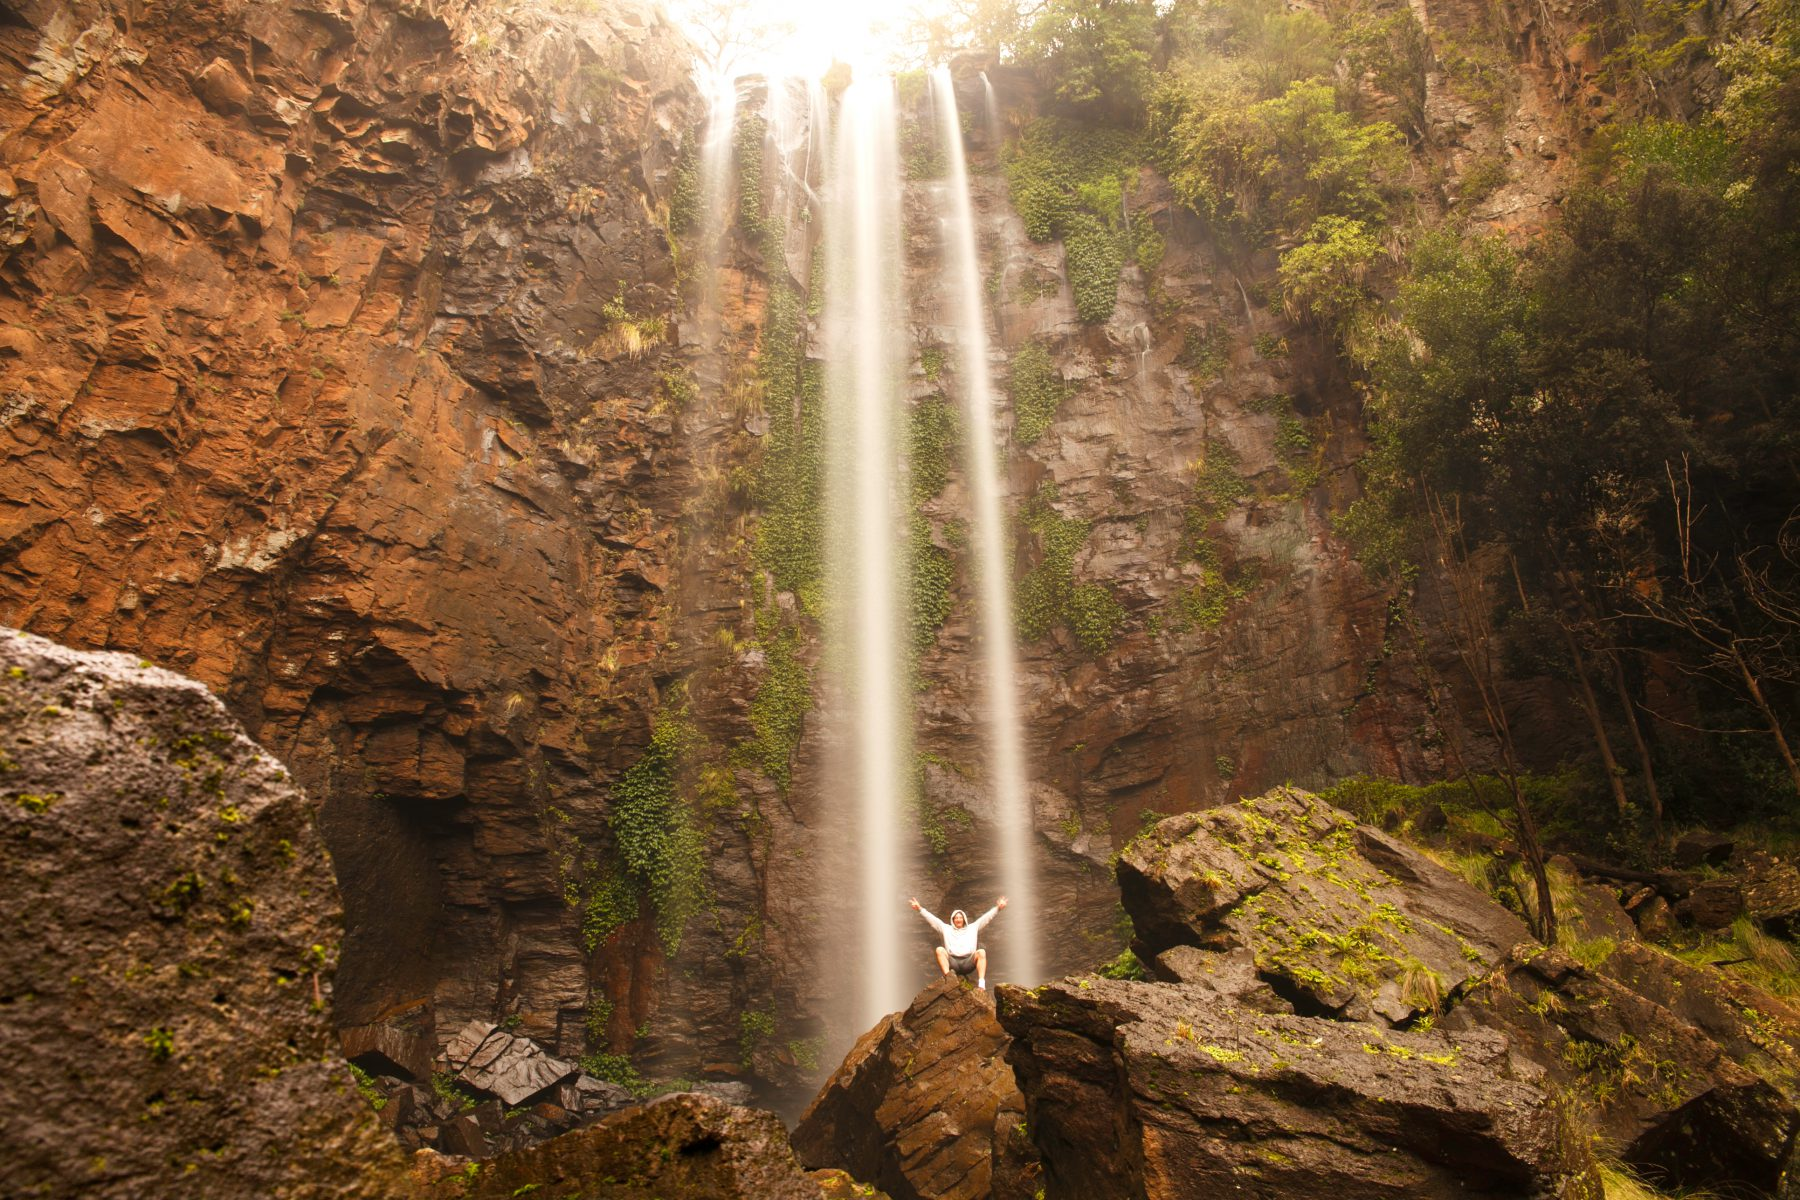 Queen Mary Falls Stanthorpe Scenic Rim Gold Coast Hinterland Springbrook O'Reillys Lamington National Park Brisbane Waterfalls Queensland Australia Lis Dingjan Photography Nowhere & Everywhere